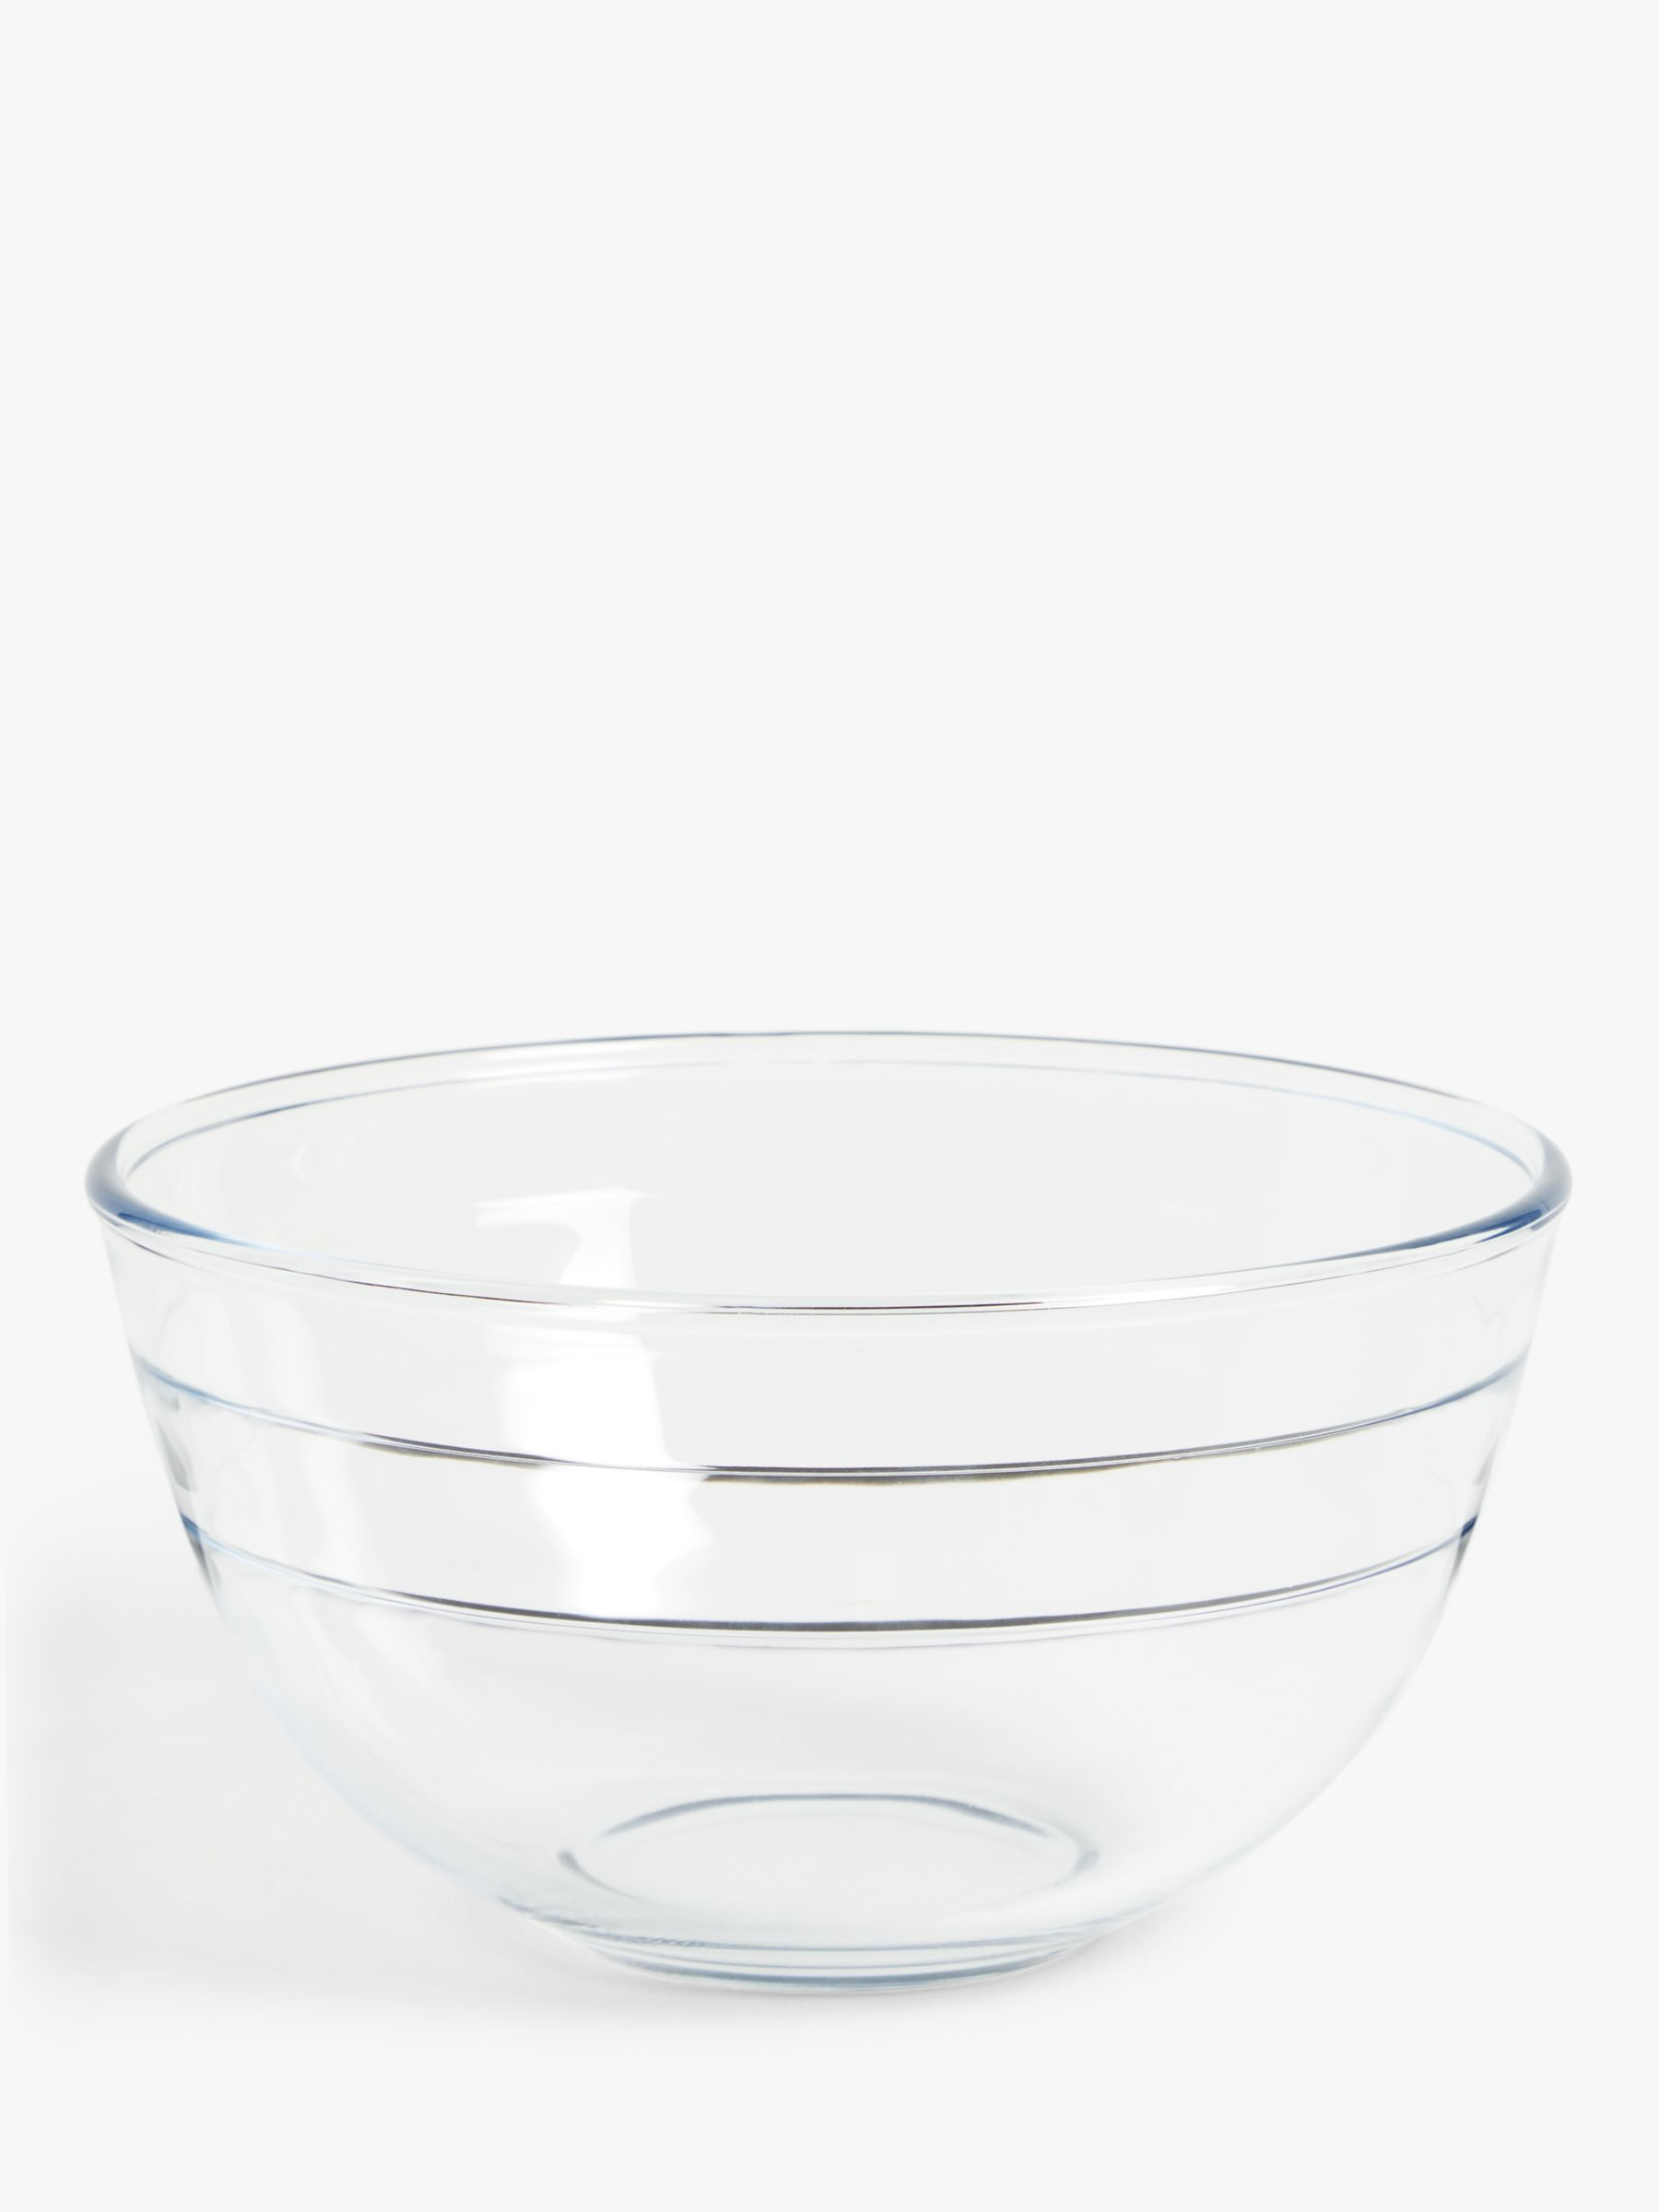 ANYDAY John Lewis & Partners Large Glass Mixing Bowl, Clear, 3L